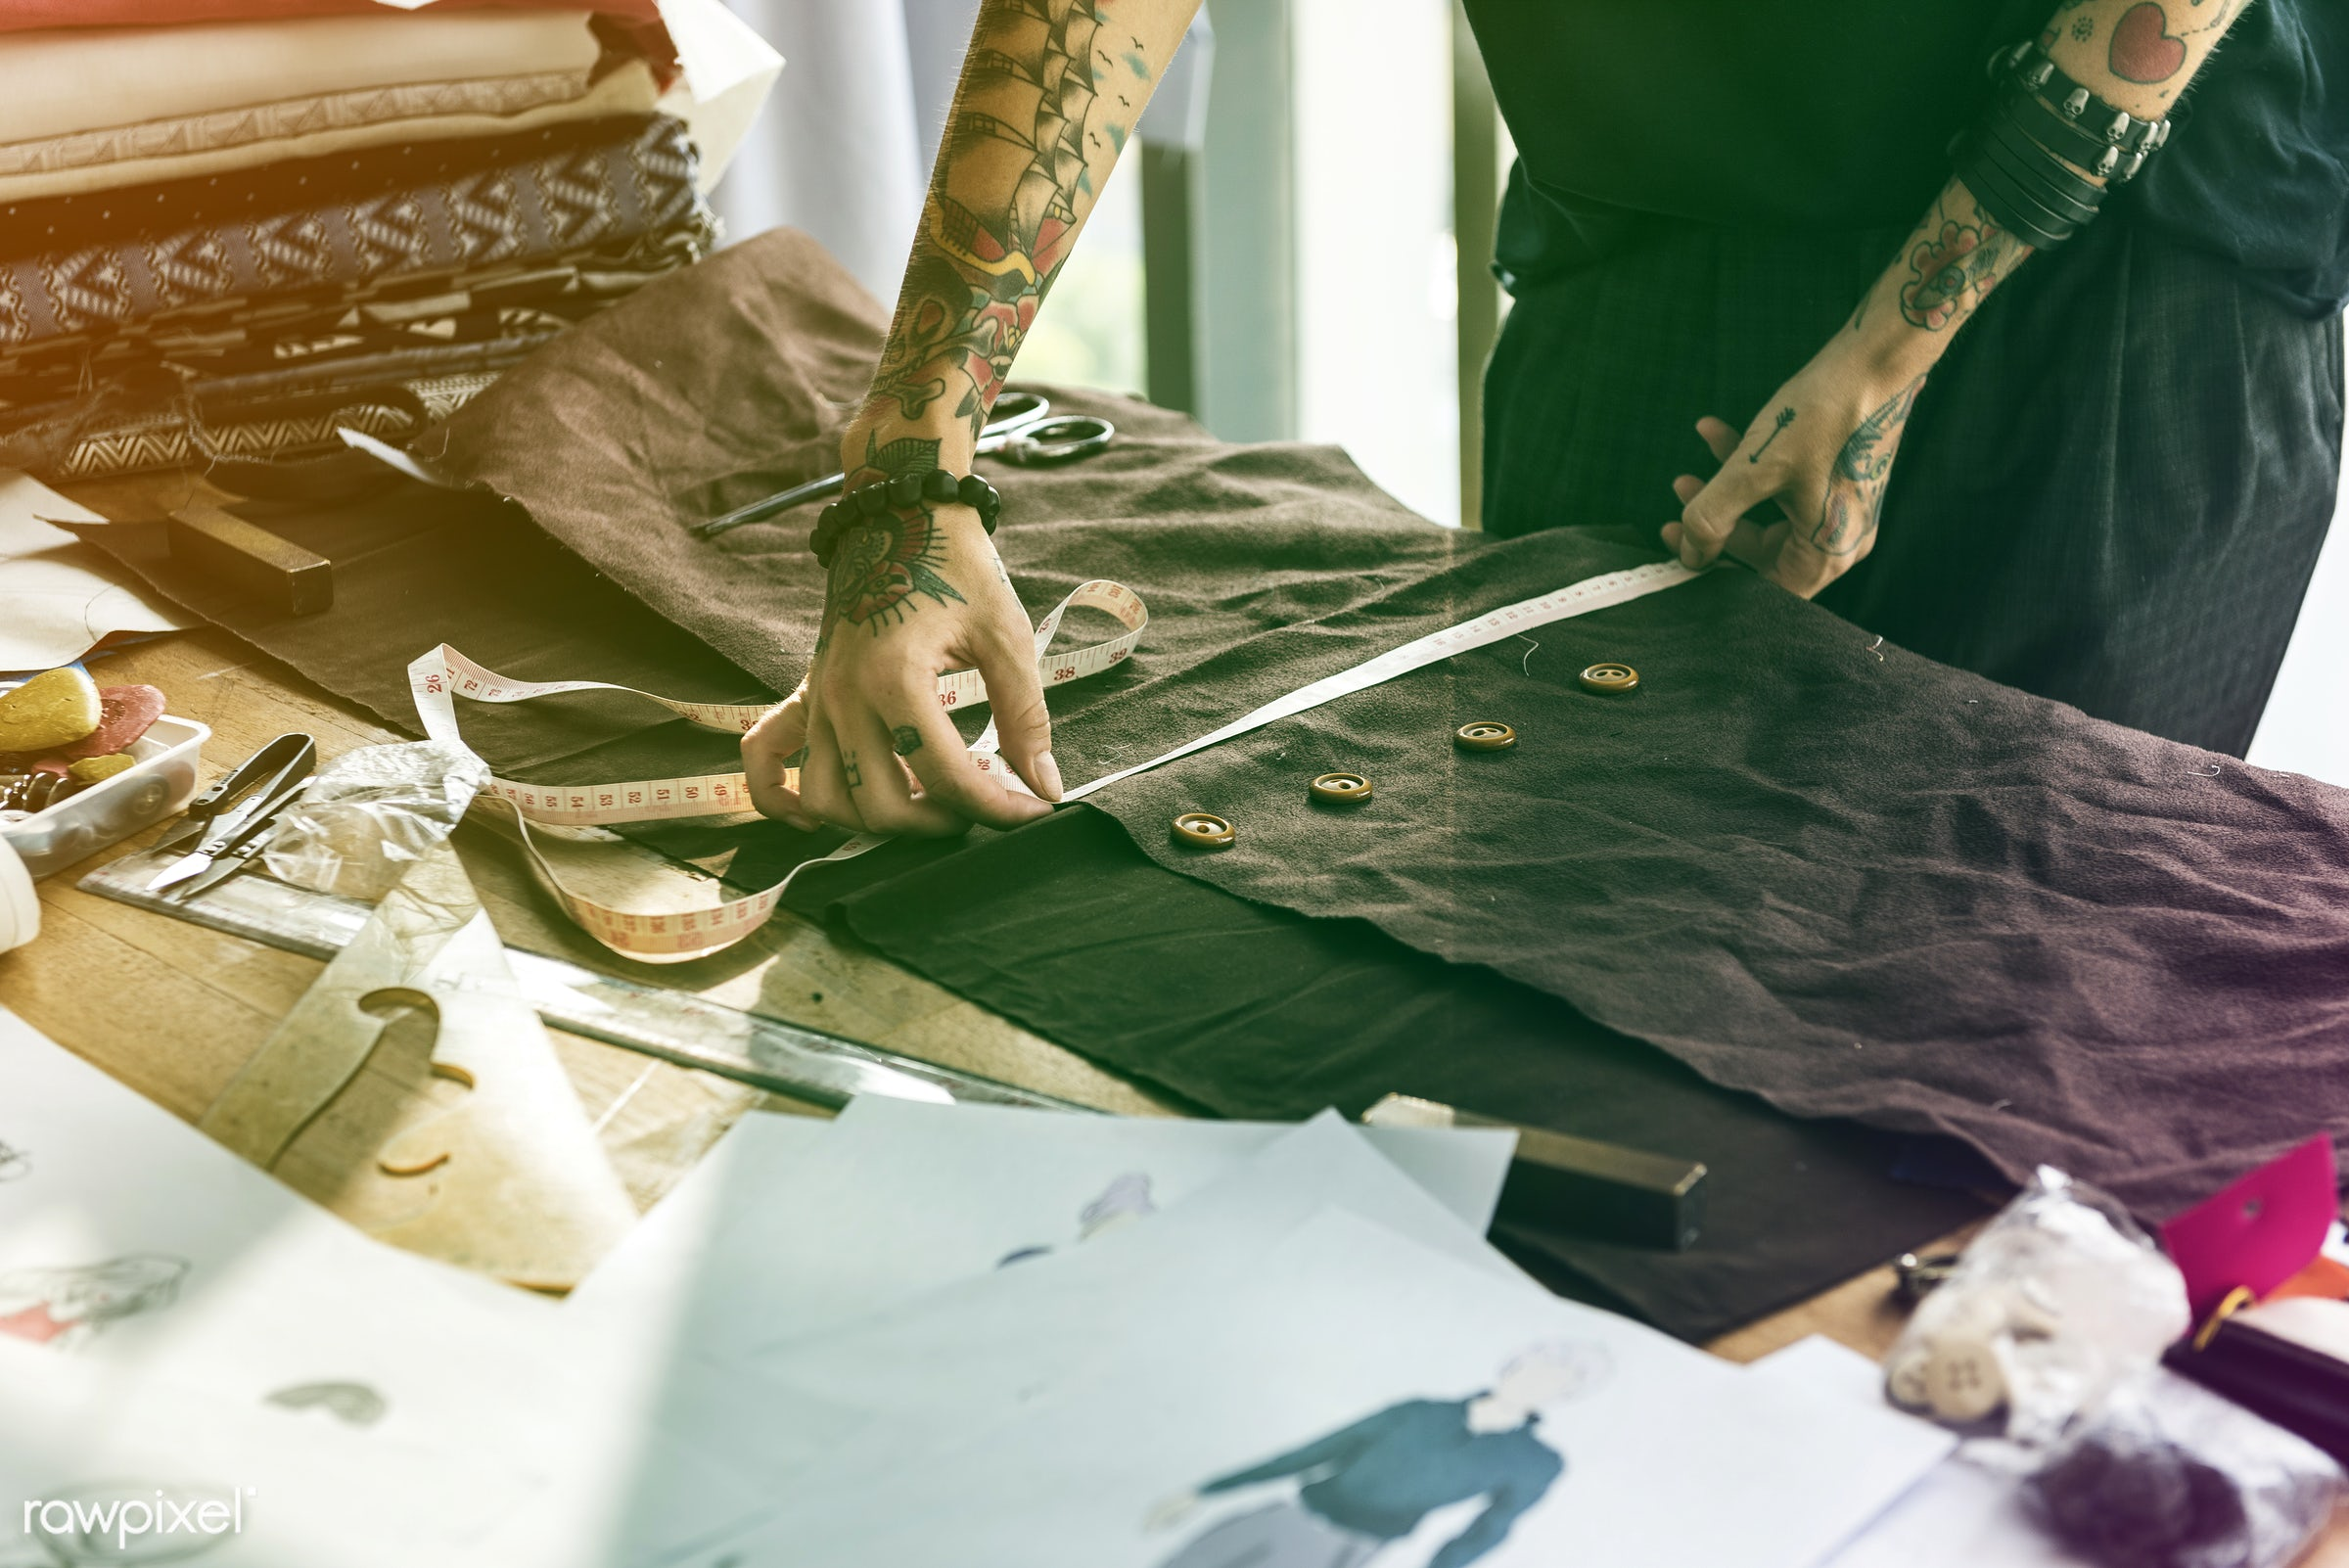 studio, store, handicraft, dressmaker, faded, vibrant, tailor made, woman, blend, lifestyle, tattoo, light, workshop,...